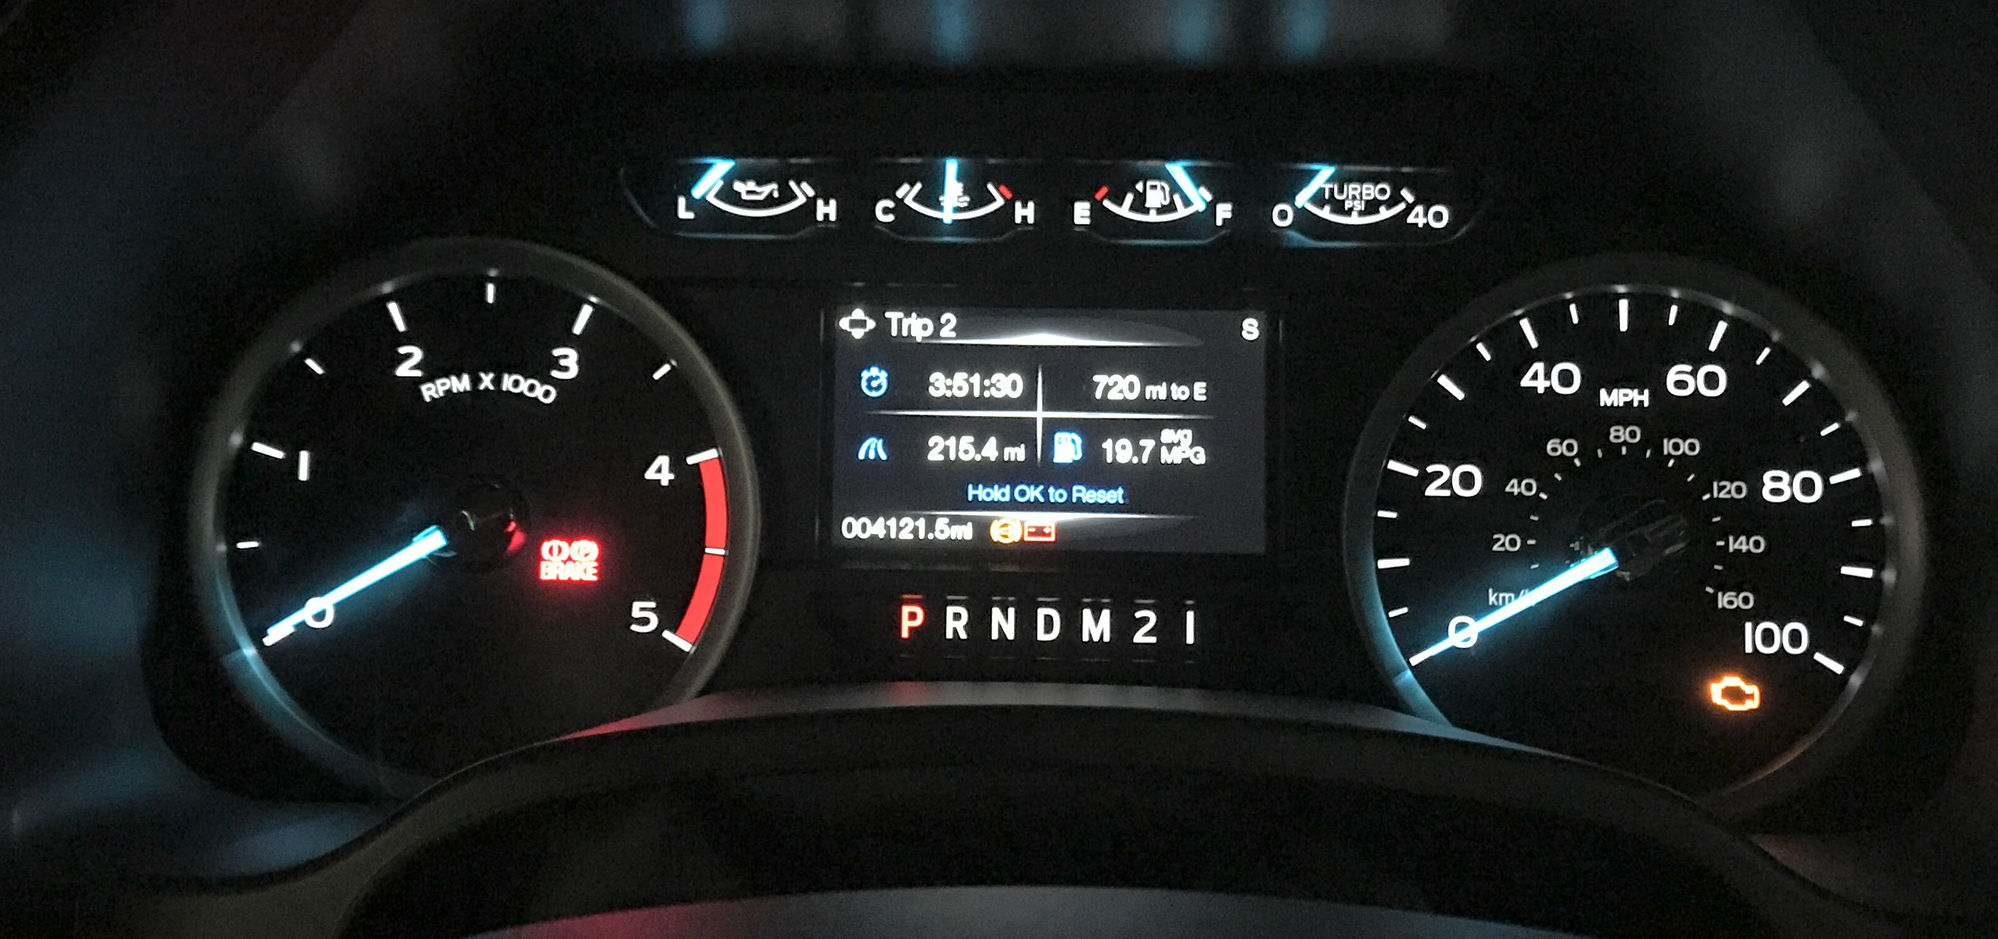 Here s a shot of the trip meter that i reset at the fuel stop the pics aren t the greatest but i think they re readable